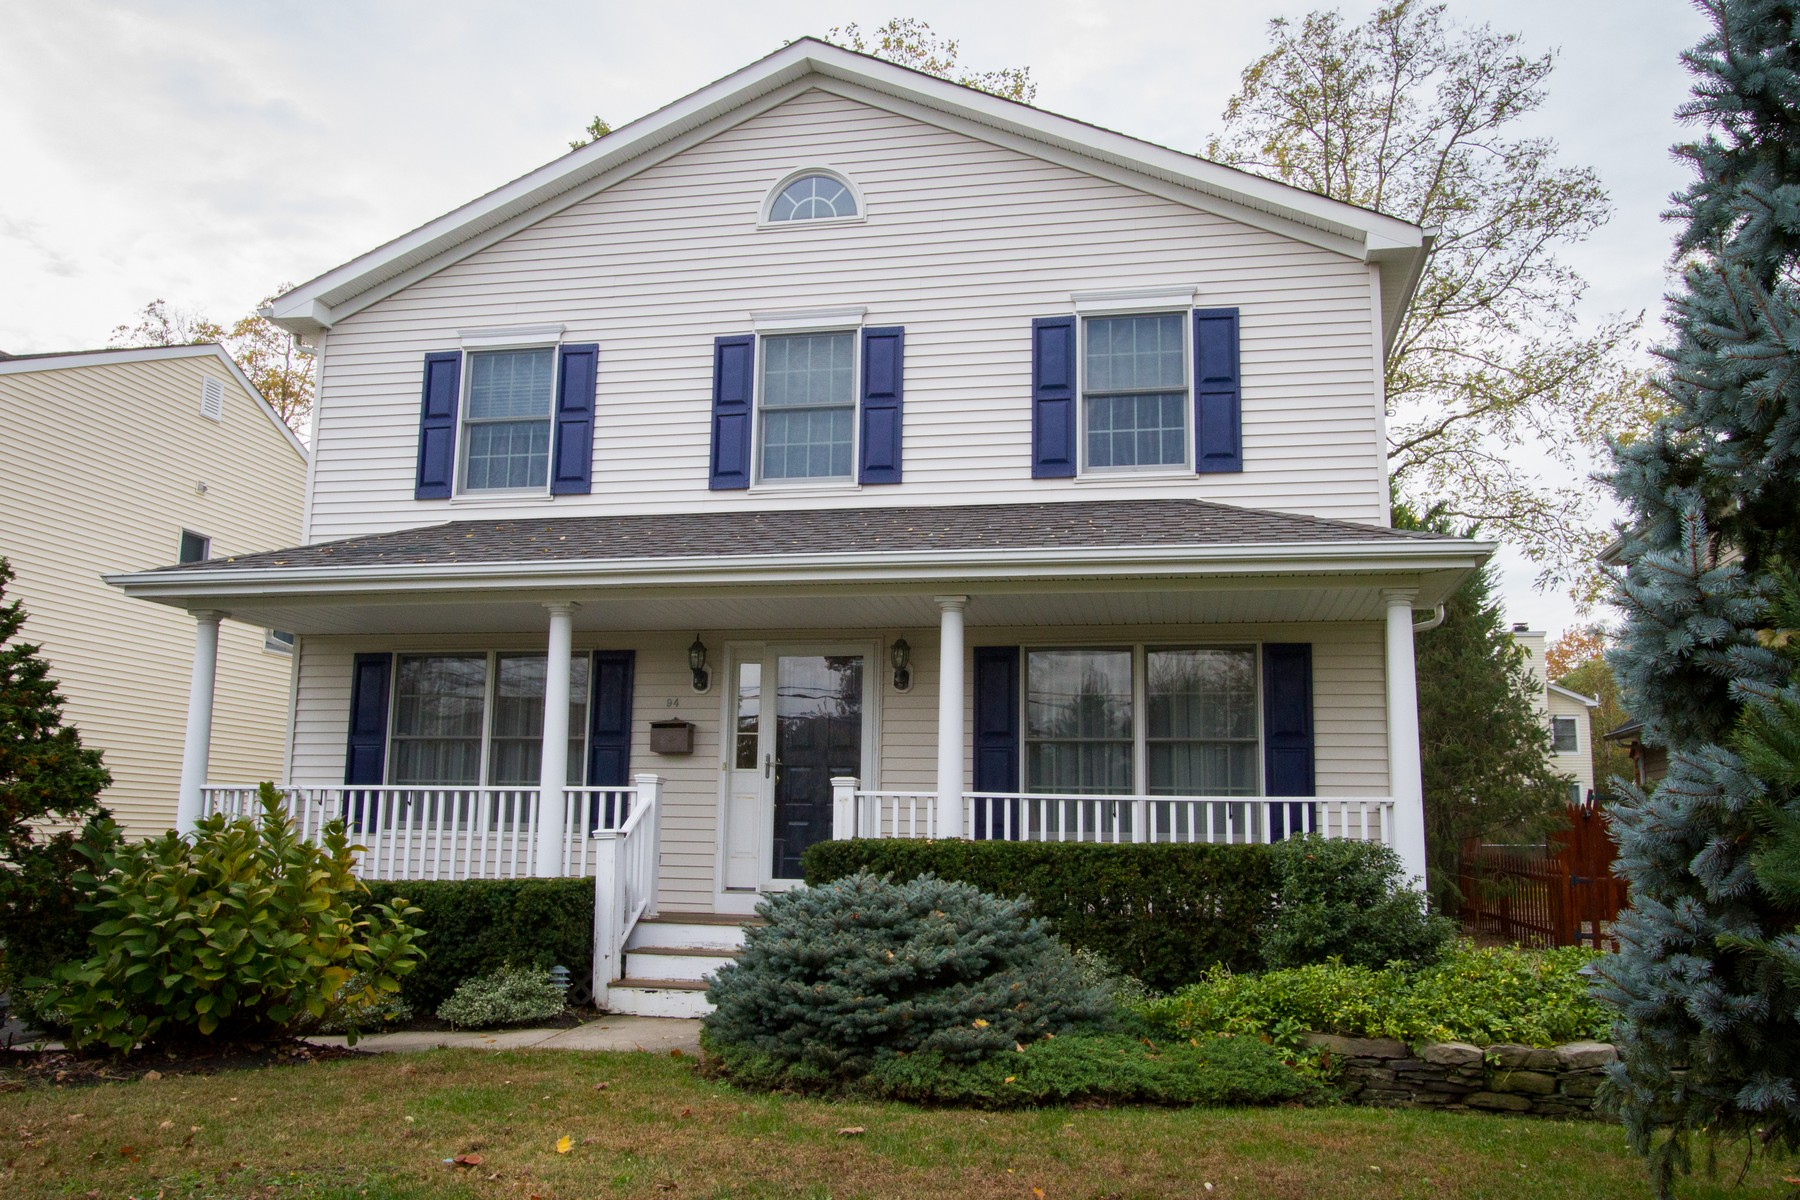 Single Family Home for Sale at A Welcoming Front Porch 94 Avenue of Two Rivers Rumson, New Jersey, 07760 United States